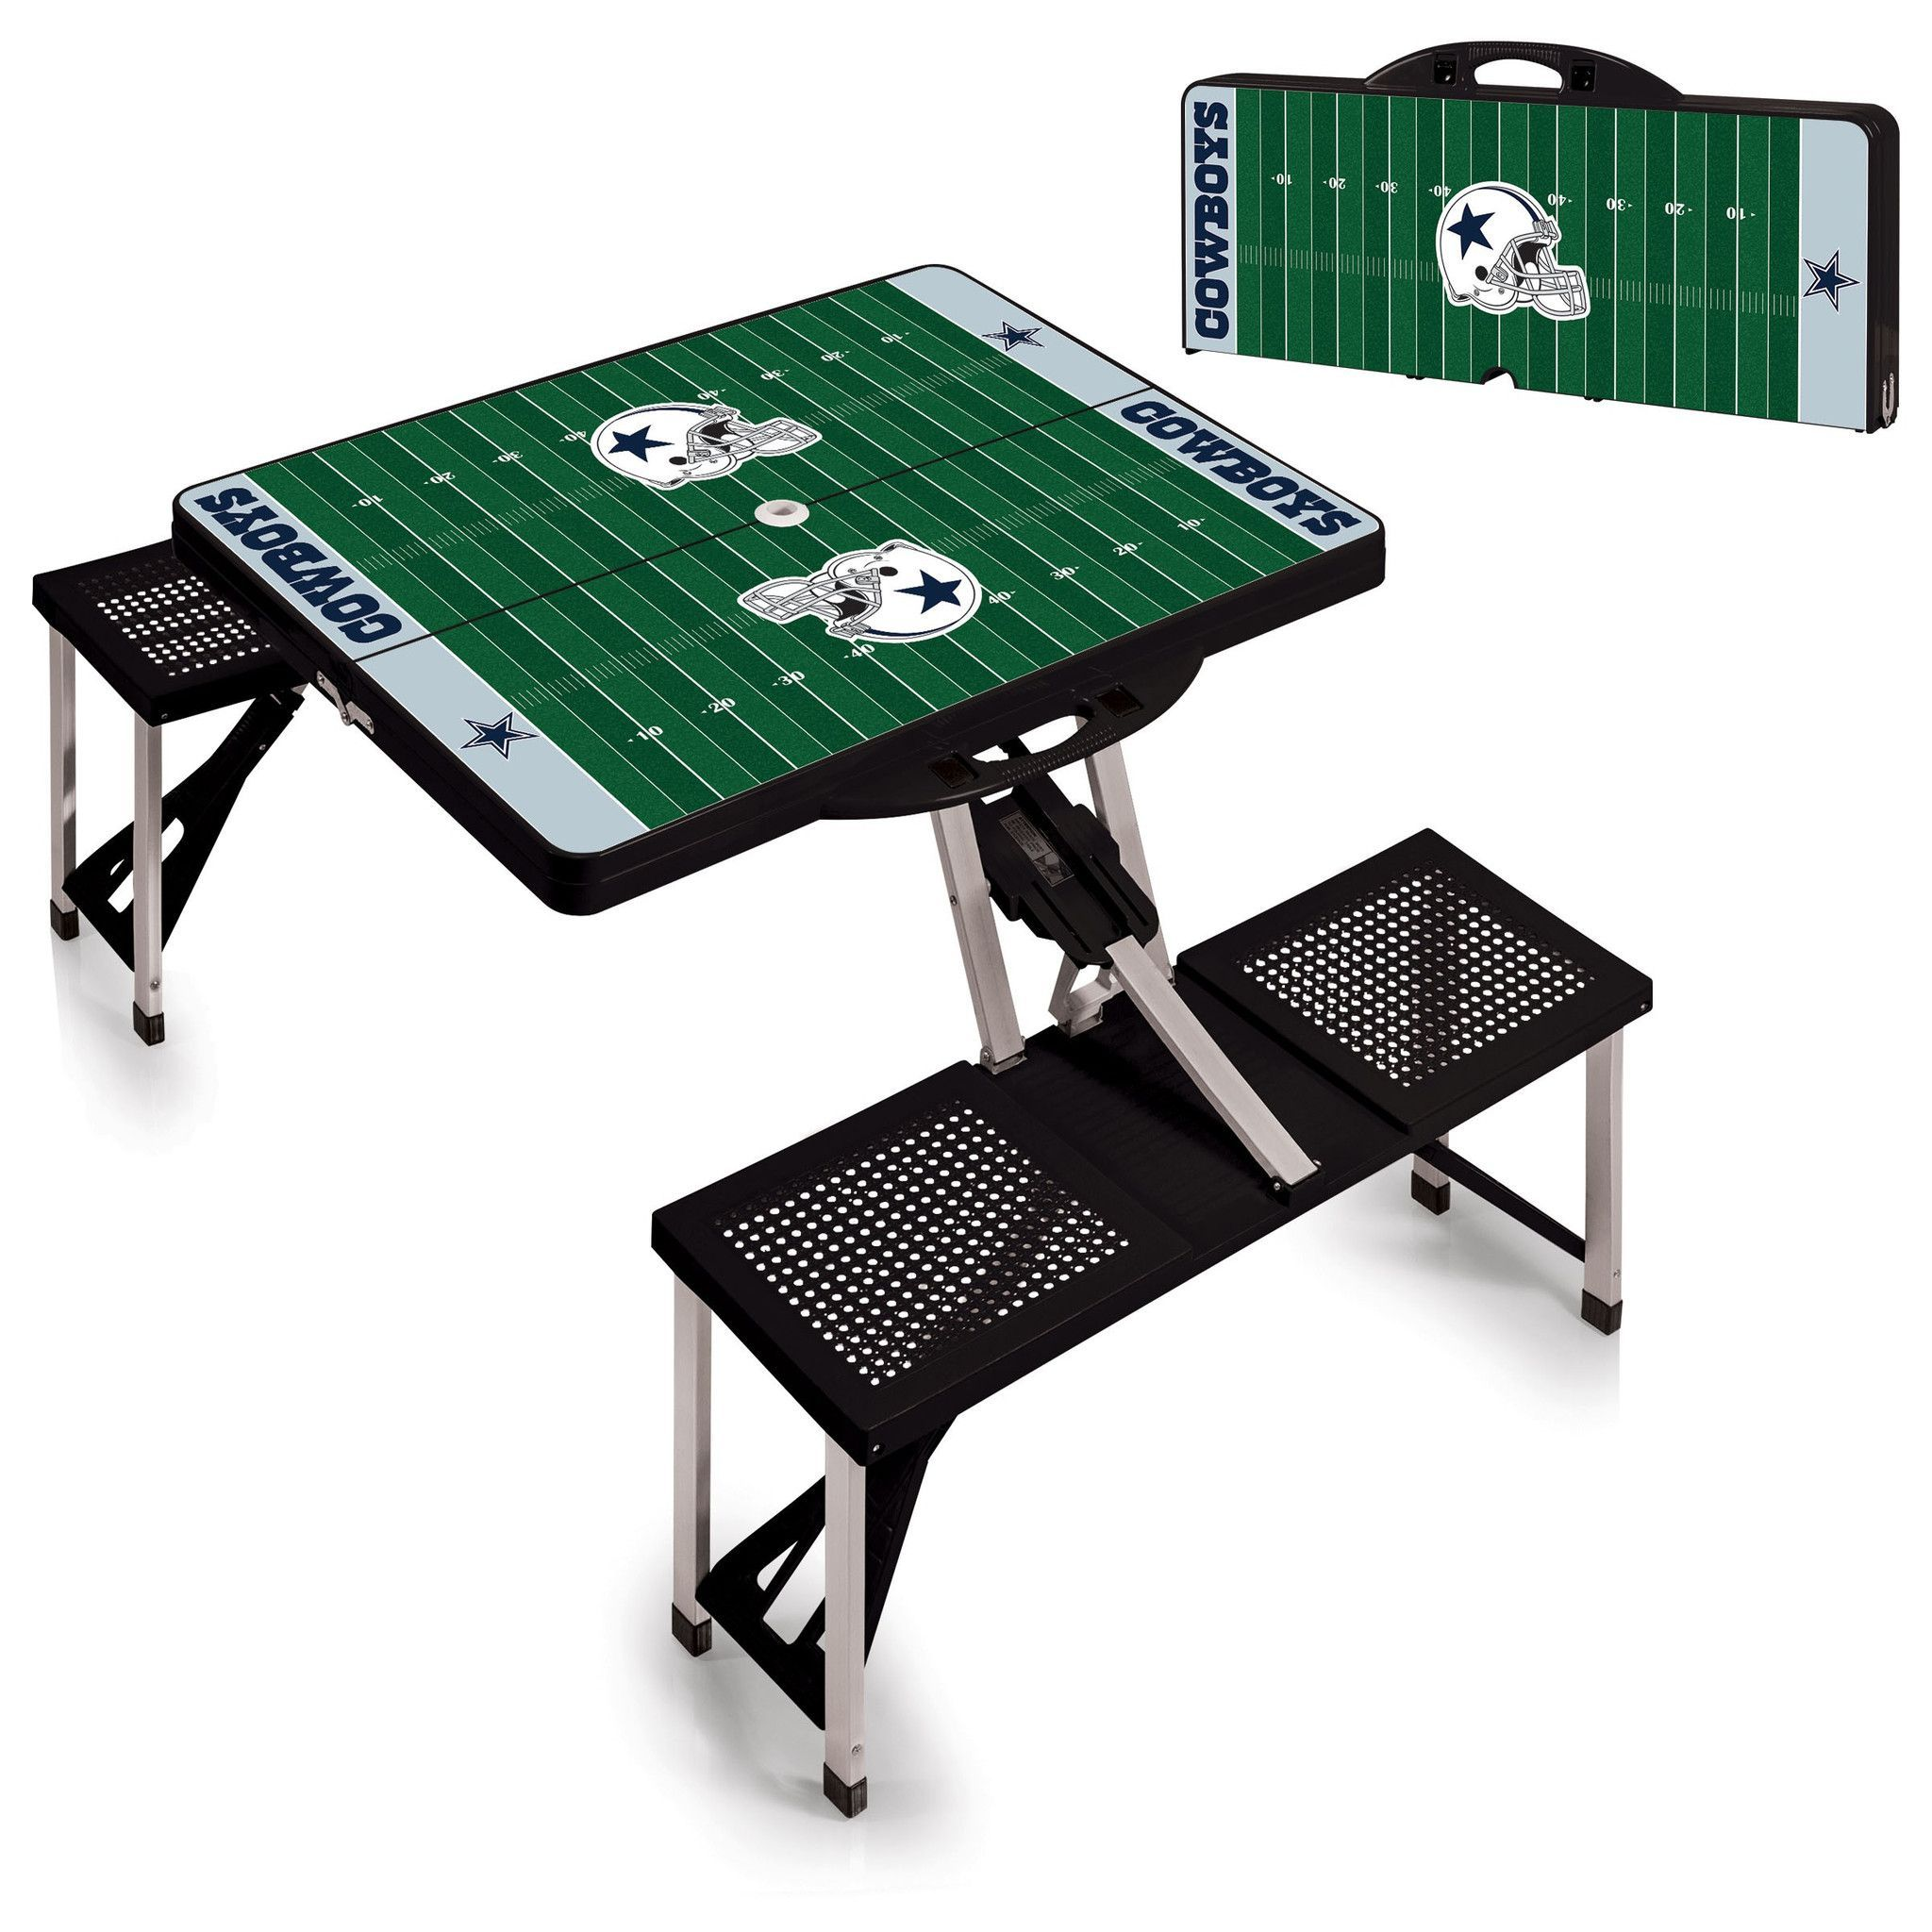 37ee9690667 Dallas Cowboys Folding Picnic Table - by Picnic Time